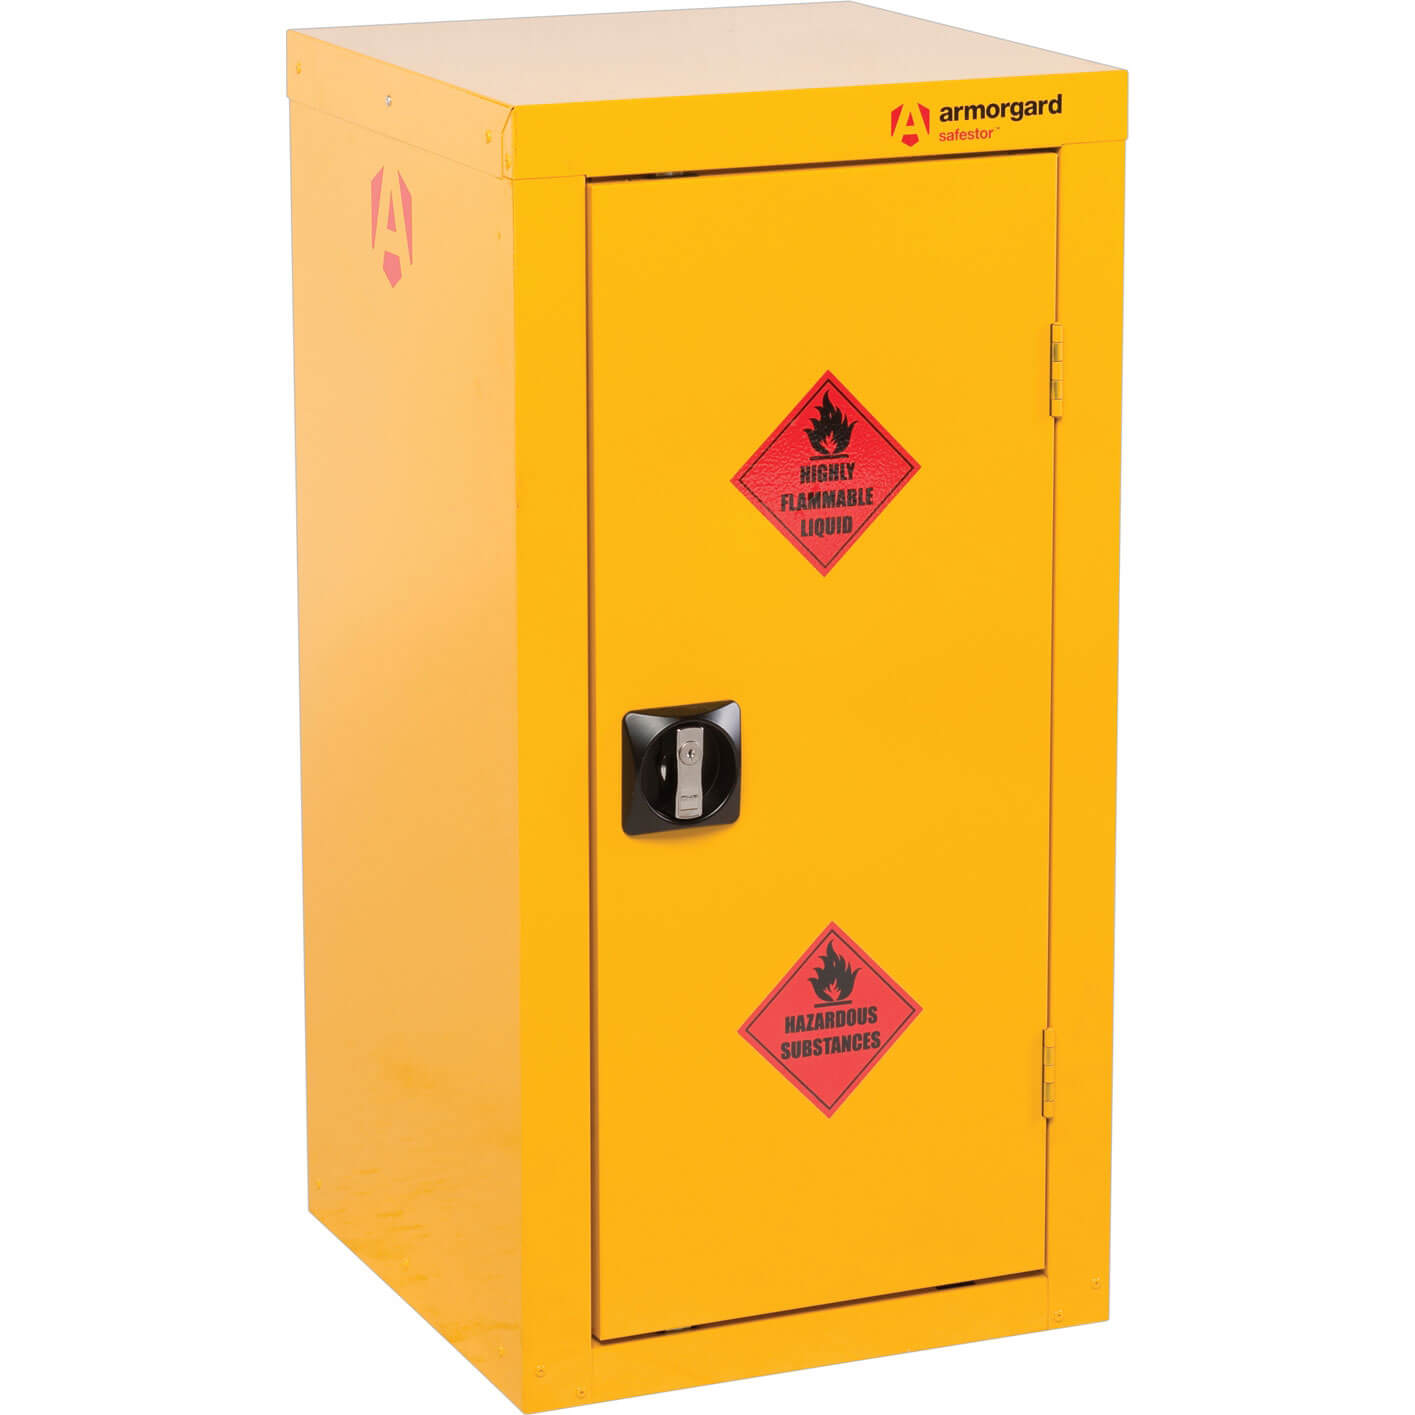 Armorgard Safestor Hazardous Materials Cabinet 460mm x 460mm x 900mm